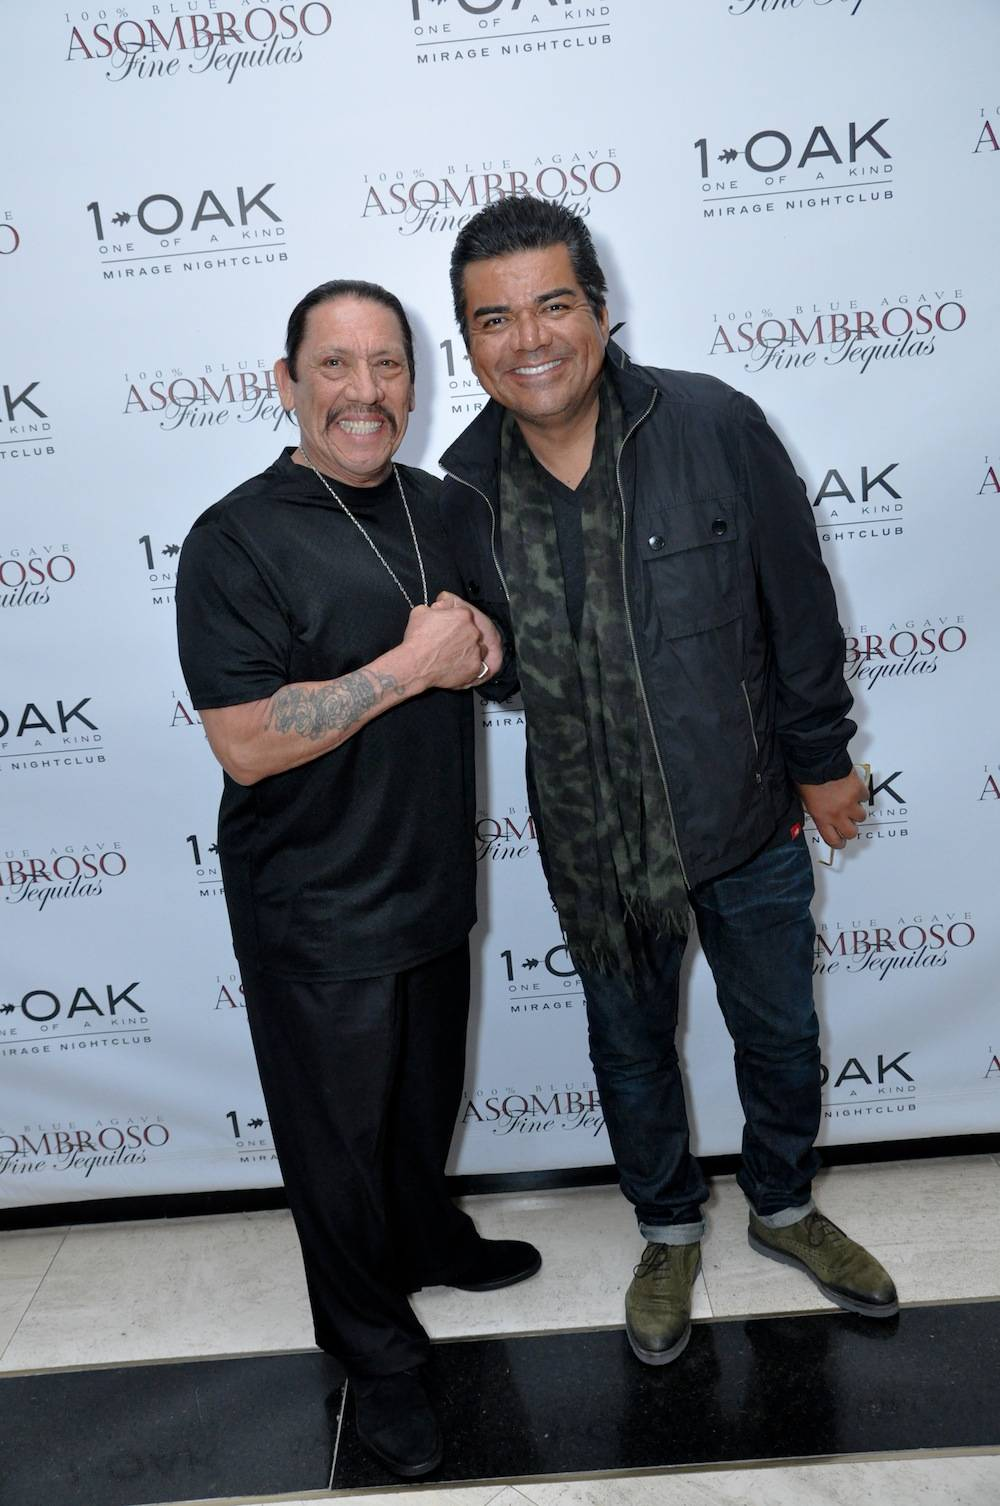 GEORGE LOPEZ AT 1OAK NIGHTCLUB 09-14-2013-5-1